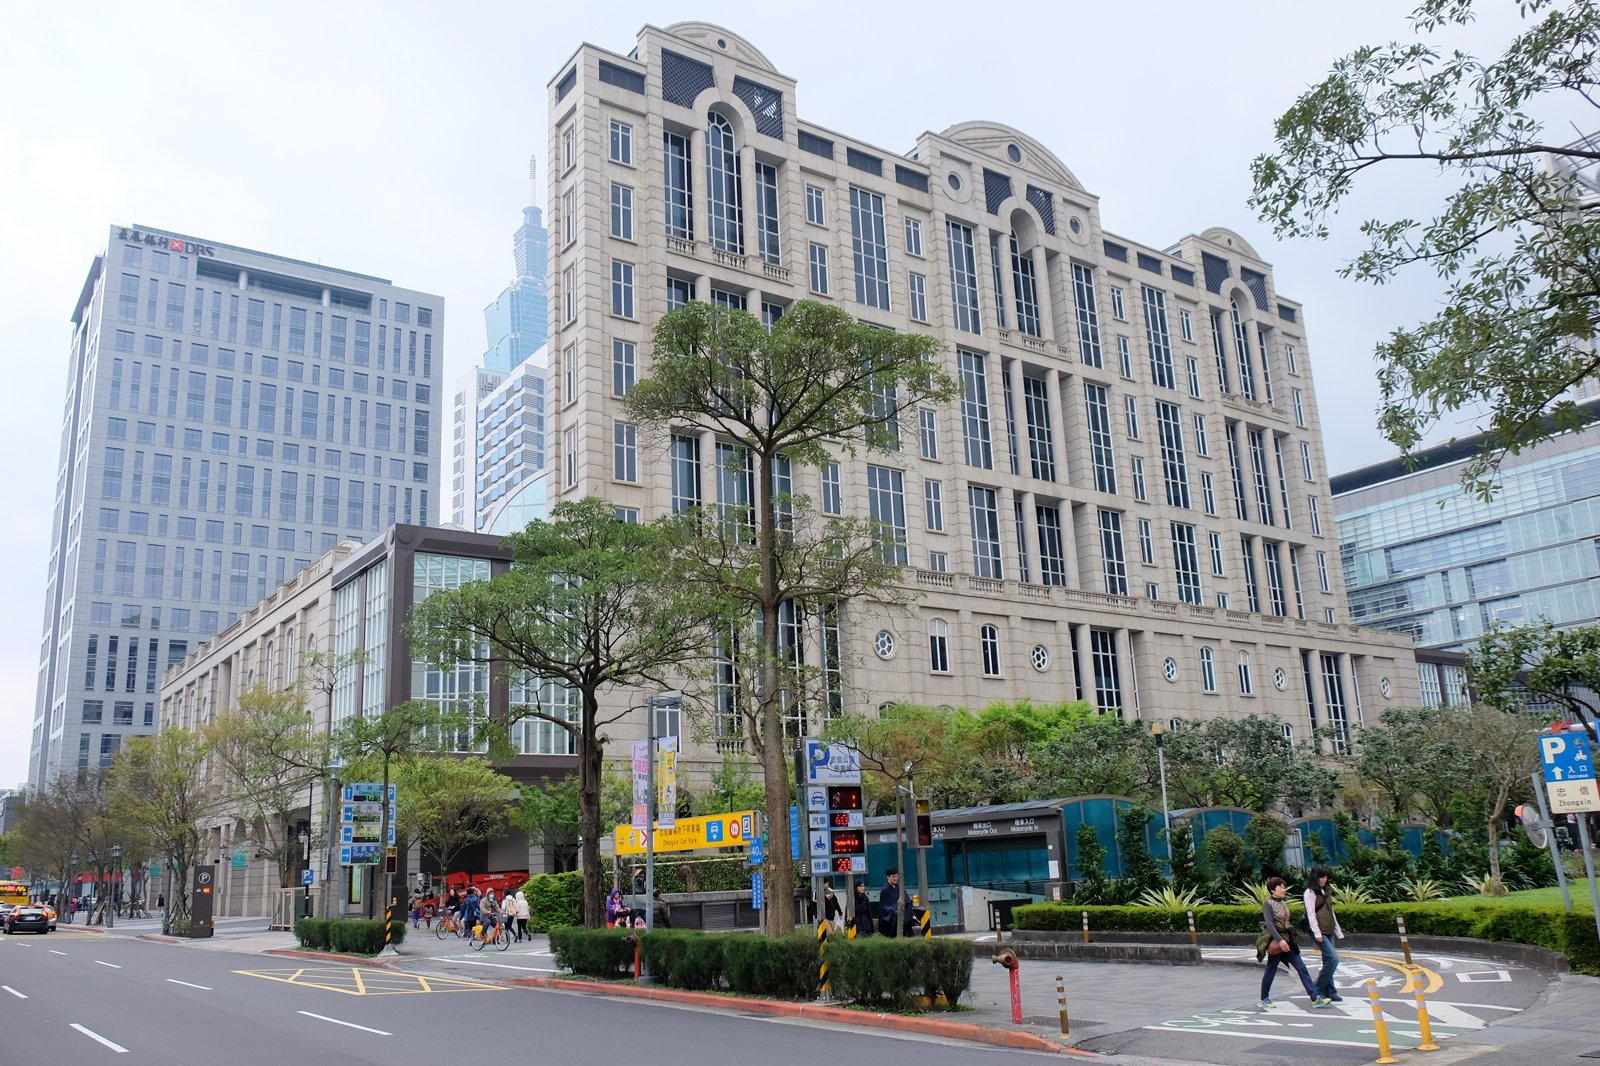 35bab54c8be 20 Best Places to Go Shopping in Taipei - What to Buy and Where to ...